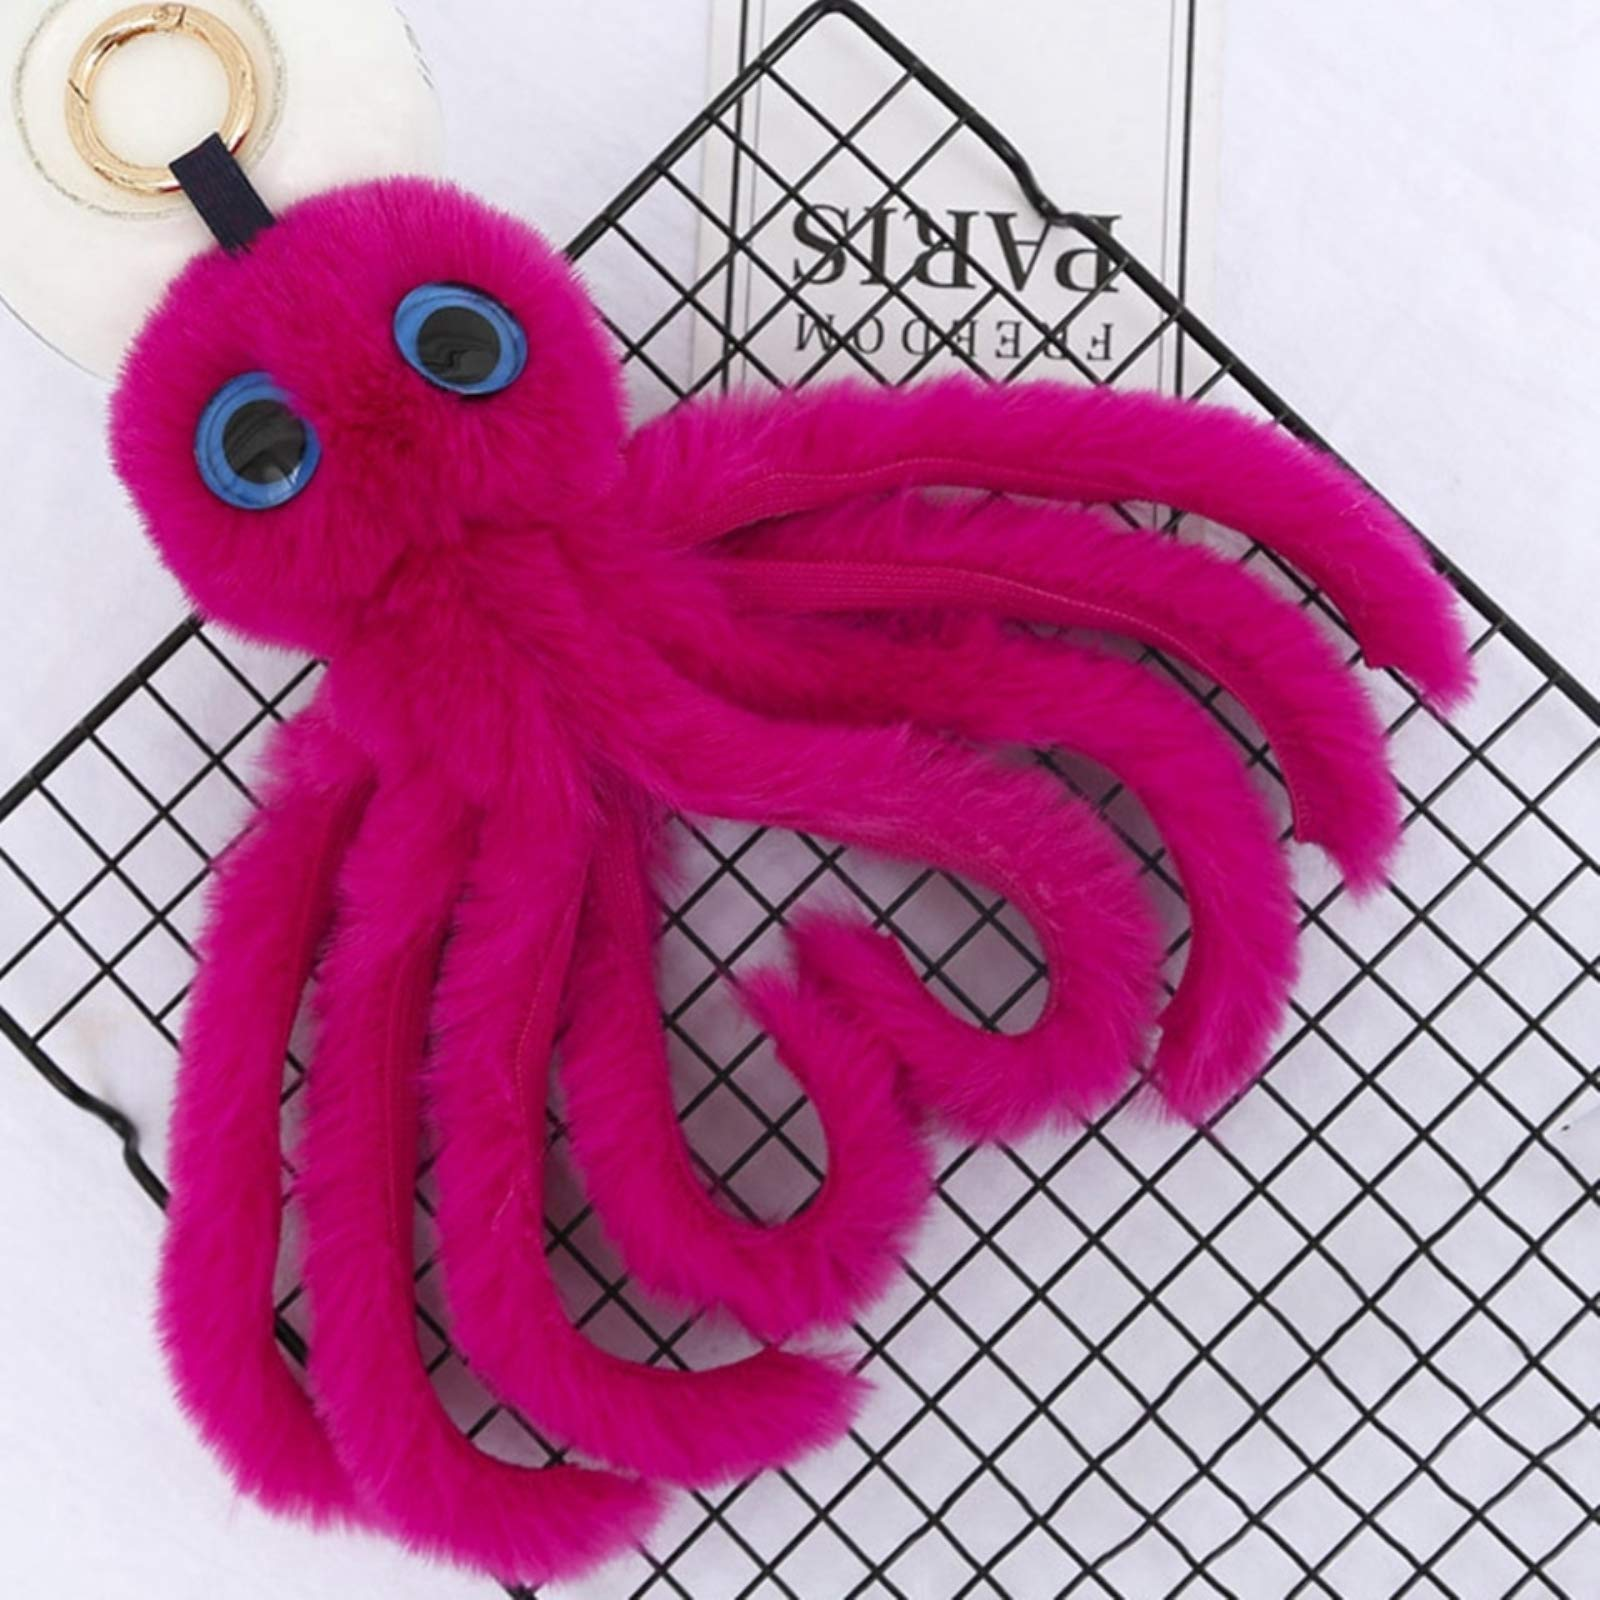 Large Key Chains for Women Novelty 2018 Cute Octopus Keychains Women Pompom Artificial Rex Rabbit Fur Car Key Ring Long Tassel Fluffy Key Chain Bag Jewelry